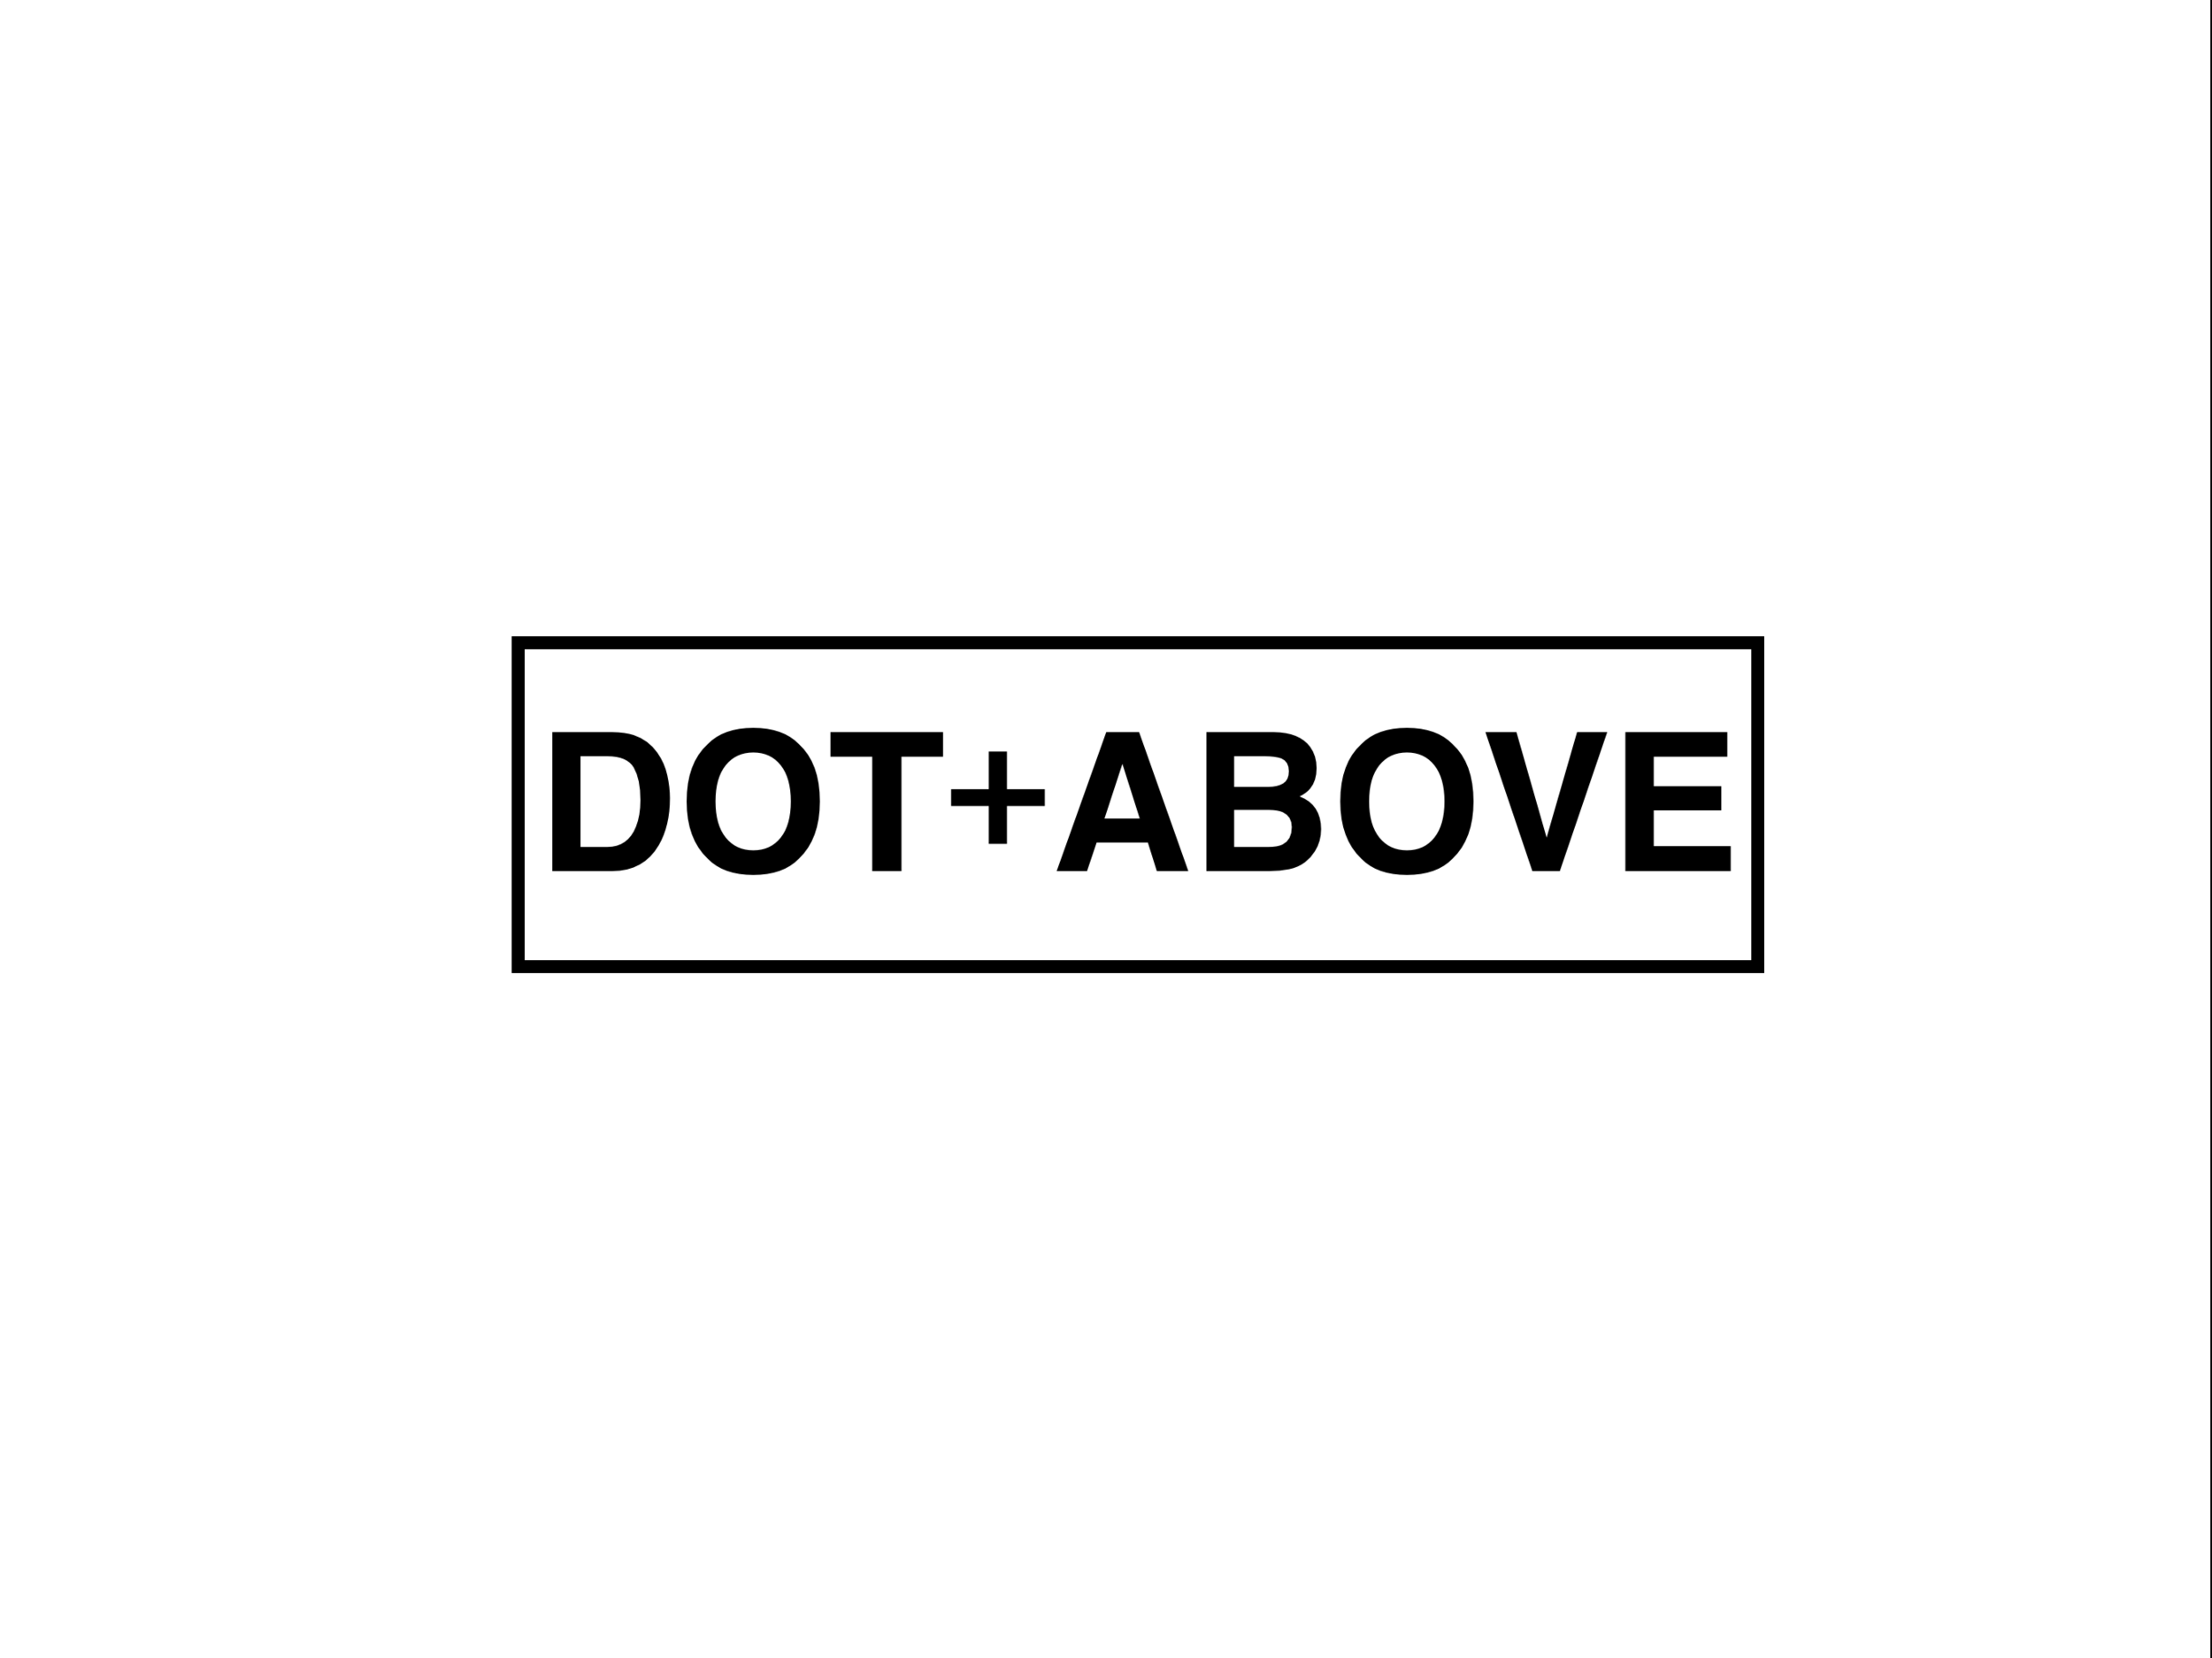 DUO-BRAND?What is DOT?What's ABOVE? - DOT is our contribution to urban wear: clean shapes, bold prints, timeless design, oversized goodness. Expect rich organic cottons, linen and hemp. Inspired by our cities and busy lives, with an added twist that brings joy to our day. ABOVE is everything… above DOT. It's the elevated you. It's you when you wanna conquer the world, or that event, or your workplace if you're feeling brave. ABOVE will bring you more complex shapes, even bolder prints, lush finishes and that extra bit of sophisticated fun and playfulness we all need in our wardrobe.